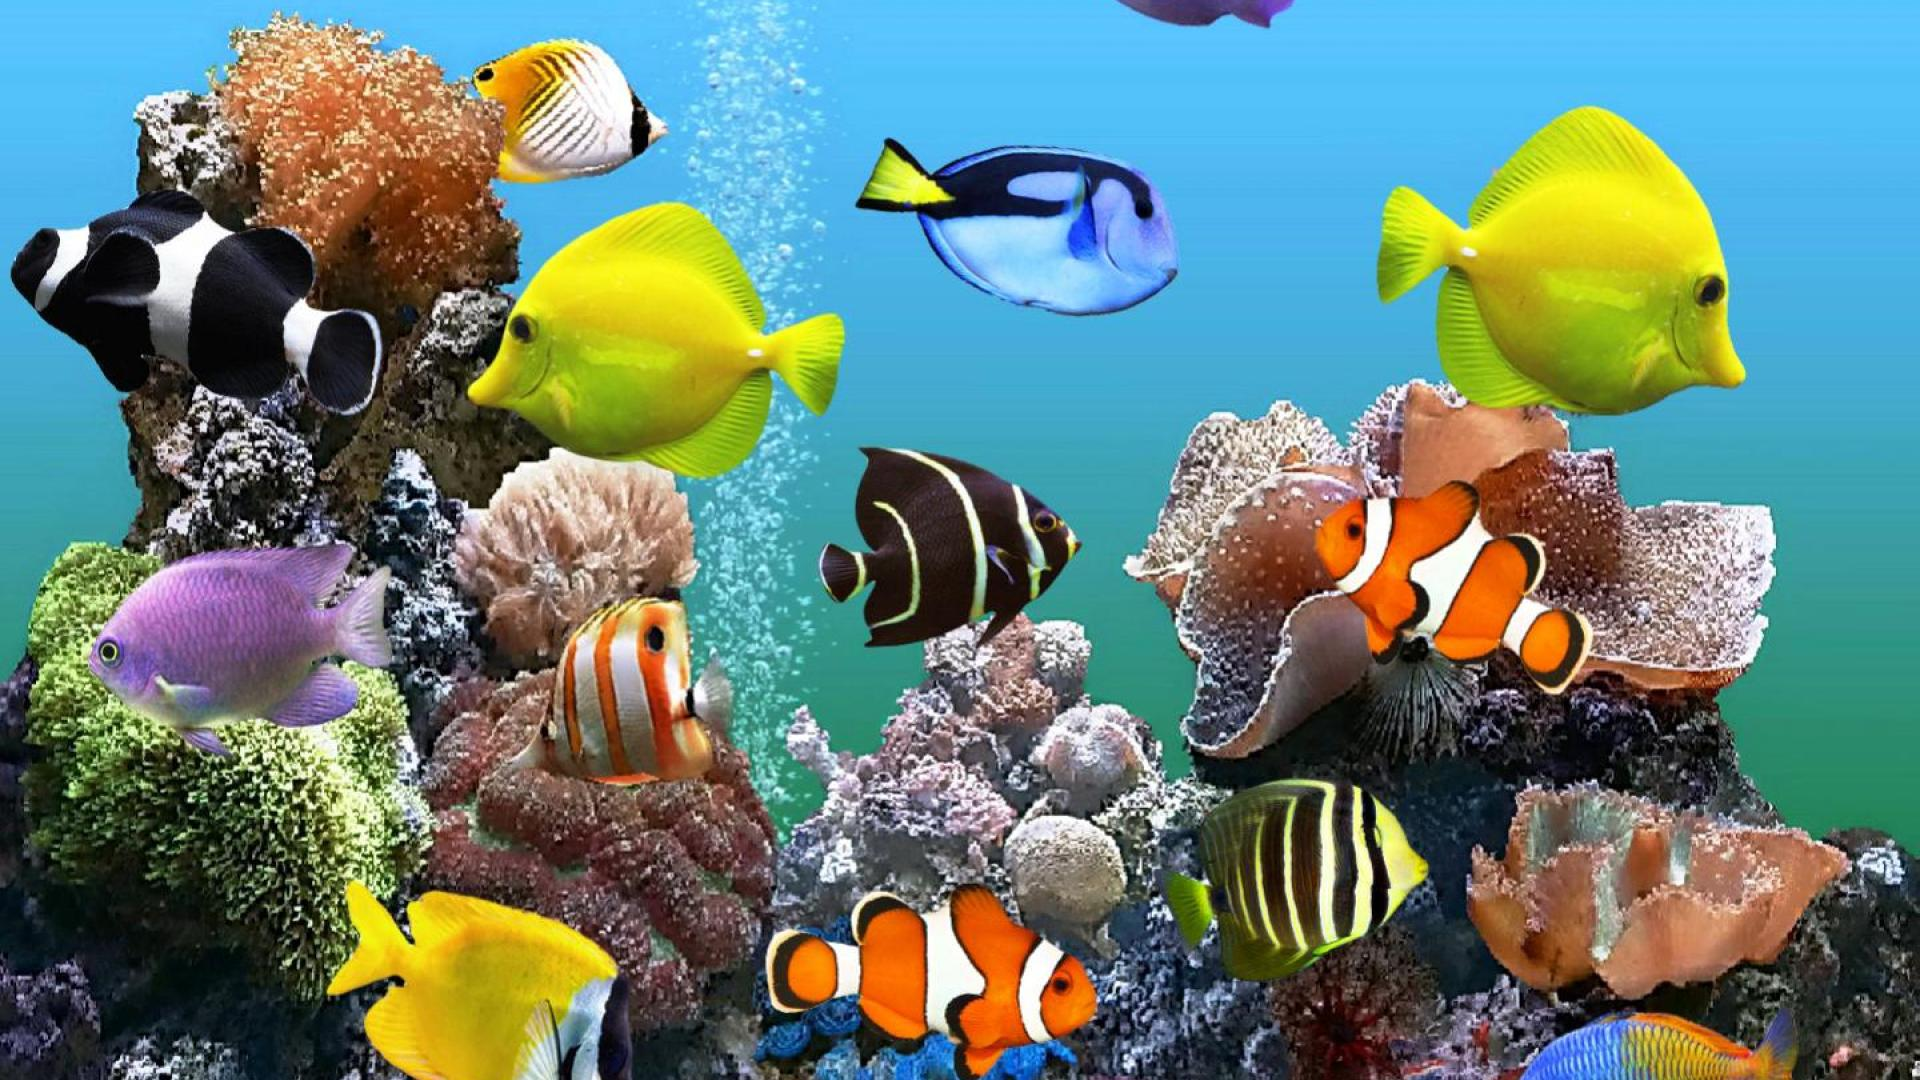 Diversity of Fish in Aquarium